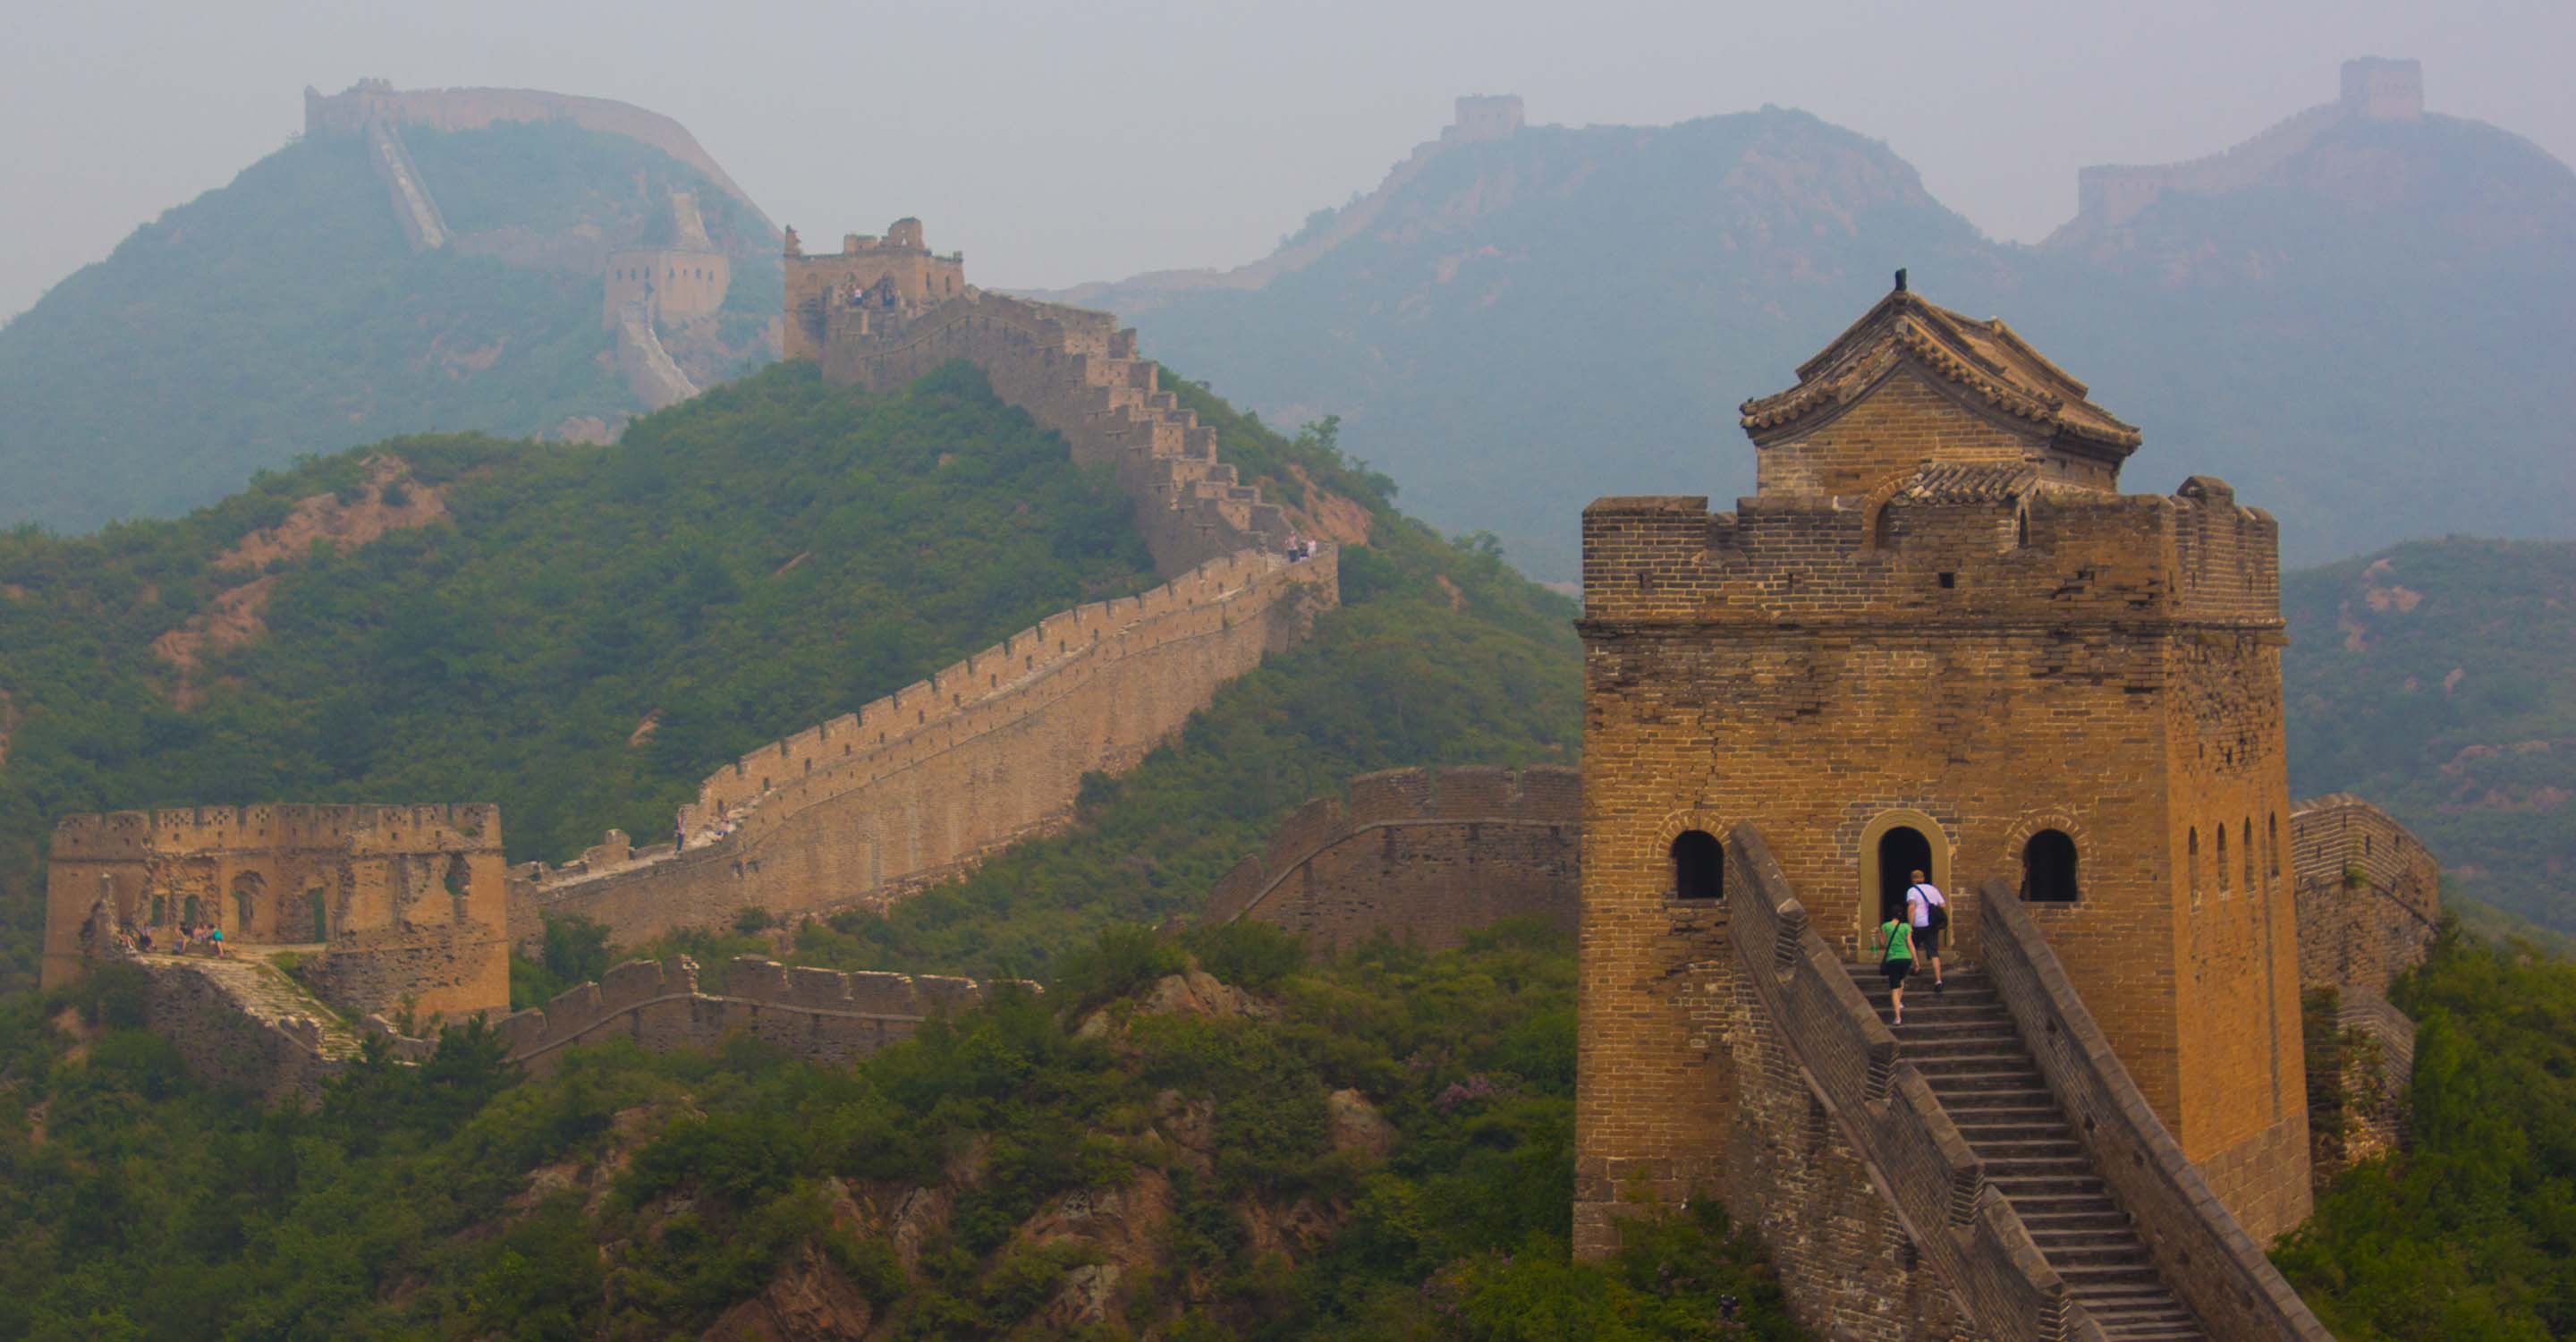 Visiting The Great Wall Of China From Beijing